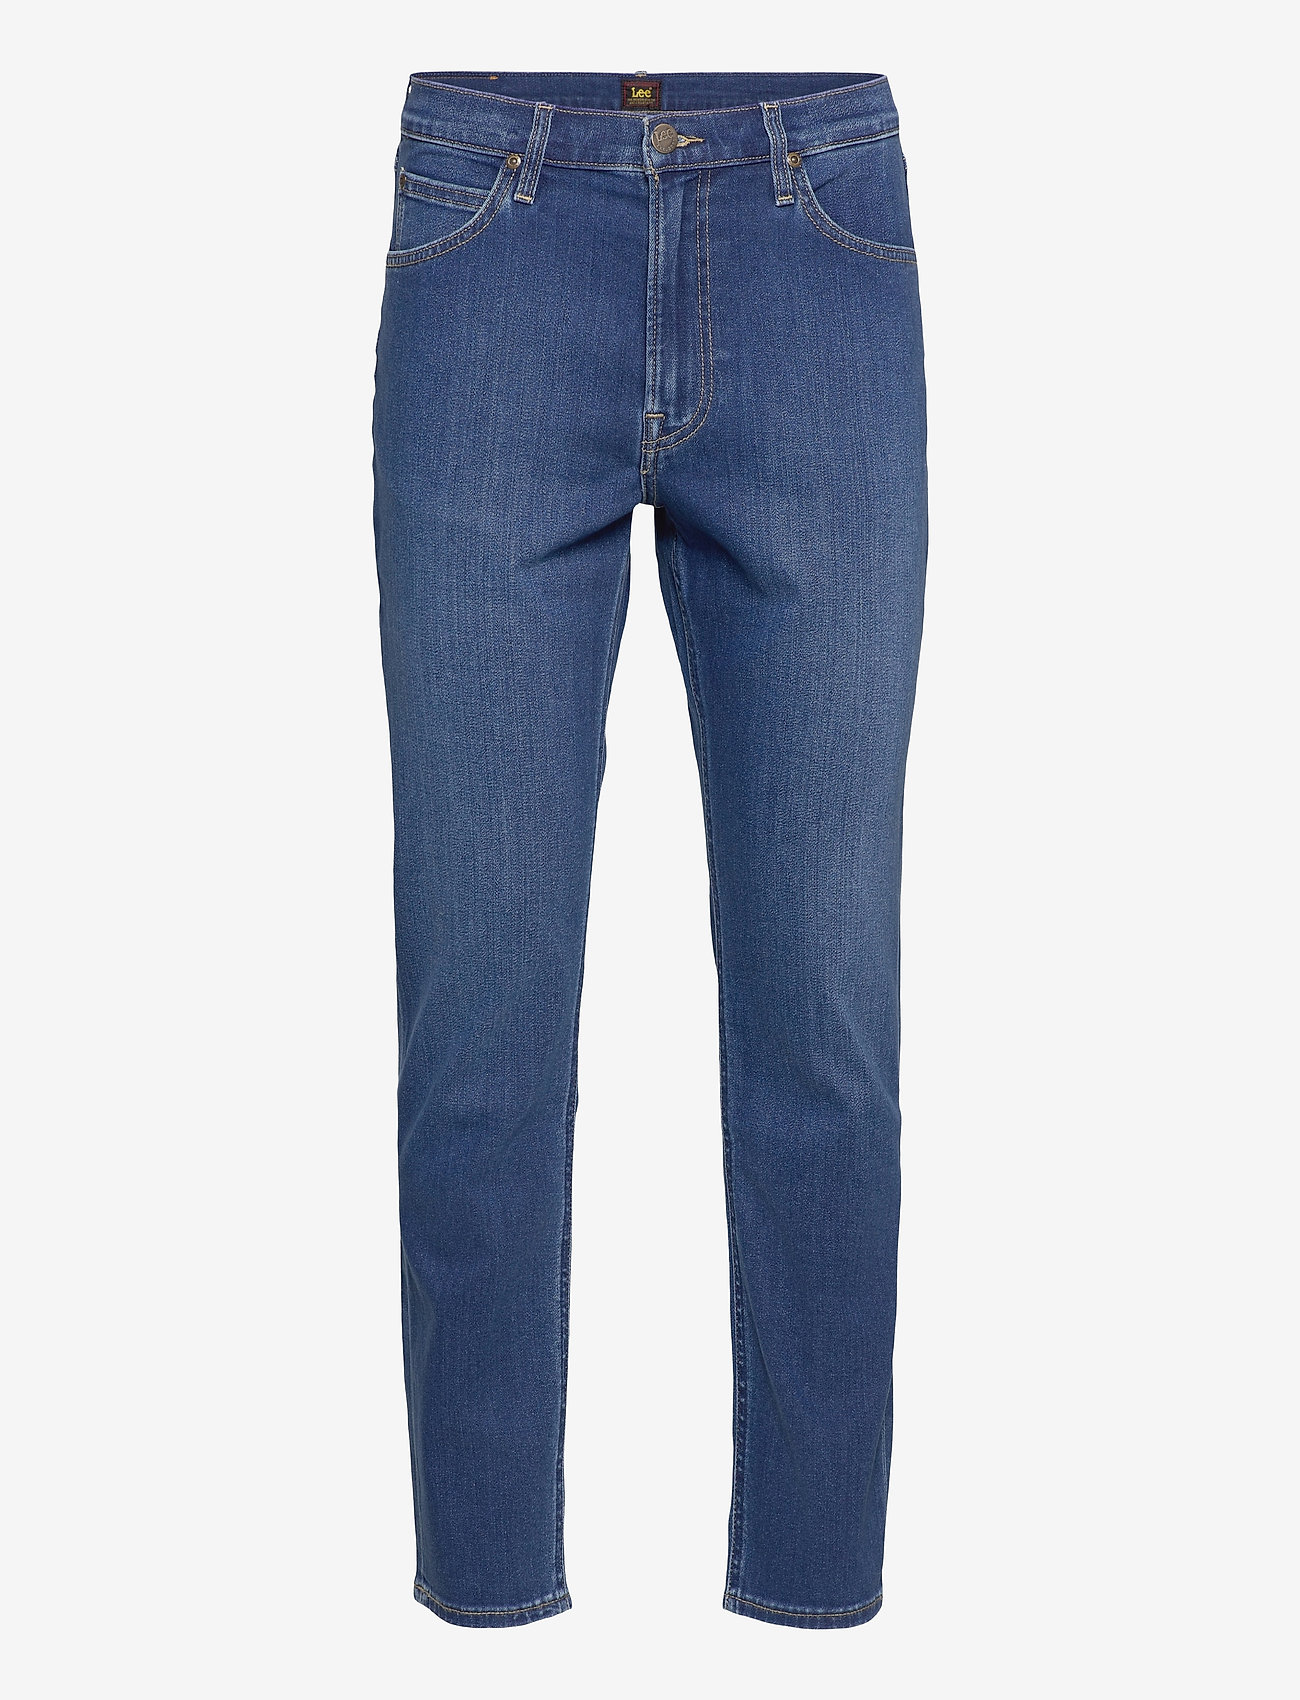 Lee Jeans - AUSTIN - tapered jeans - mid worn in ray - 0